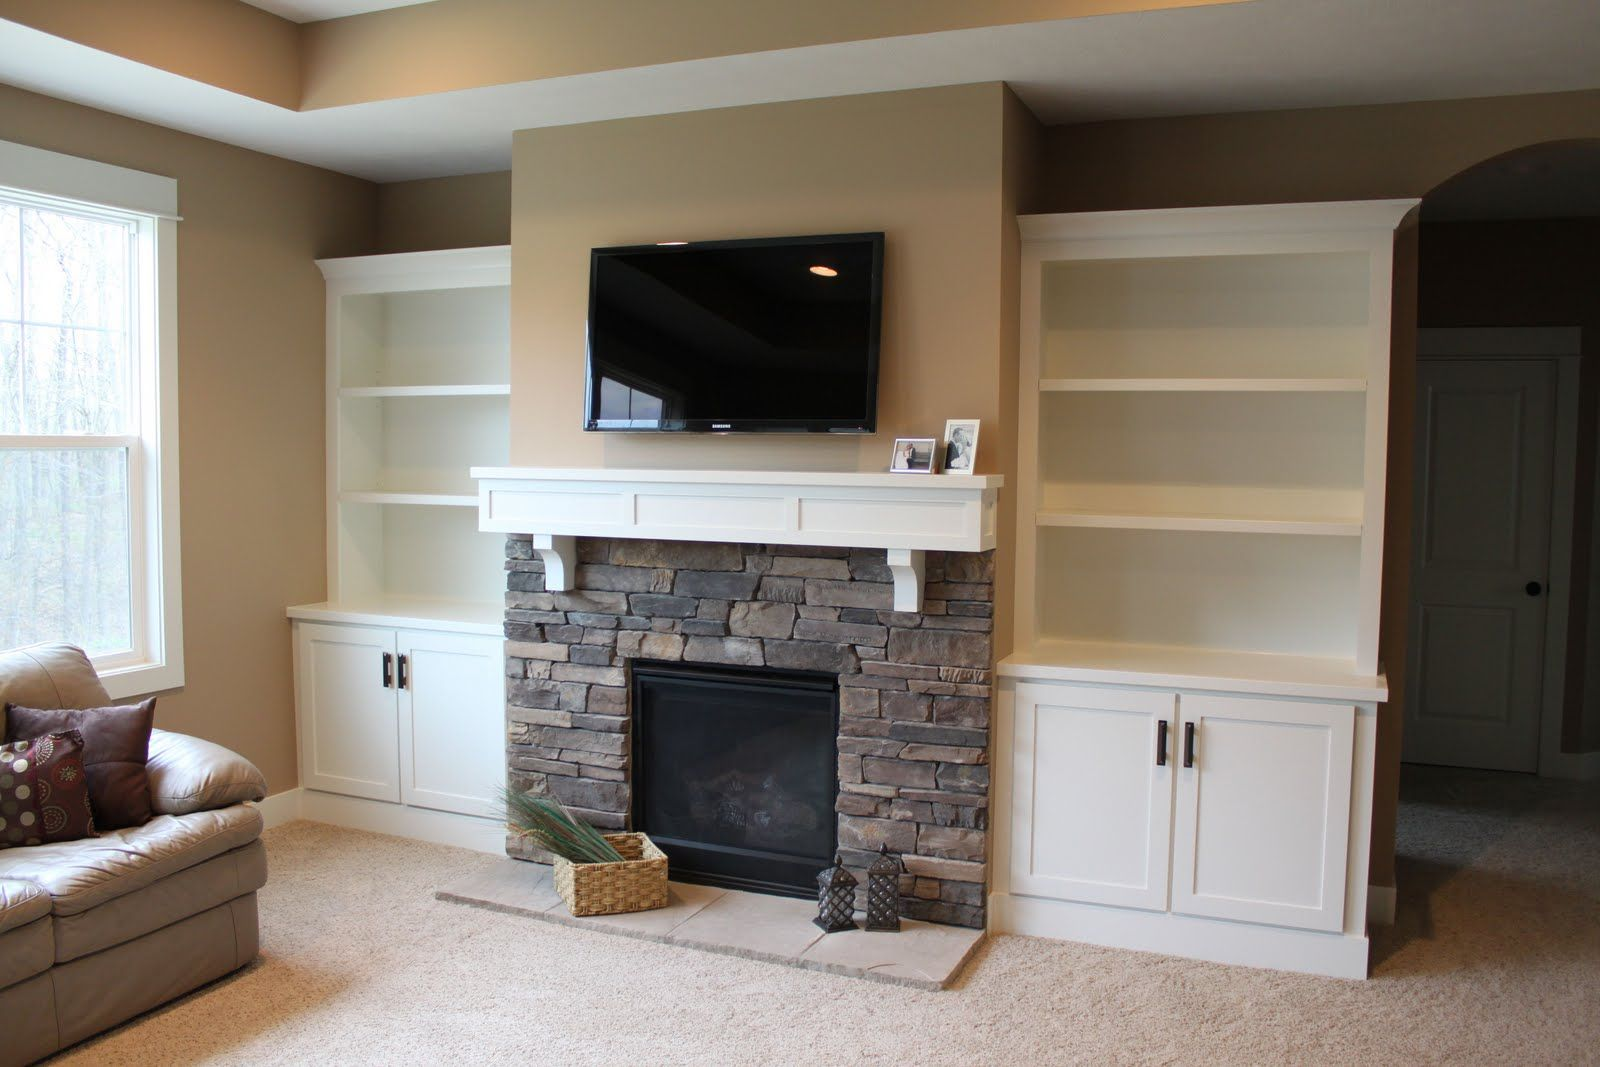 Builtin Shelves Surrounding Fireplace  Built In Cabinets And - Fireplace with bookshelves